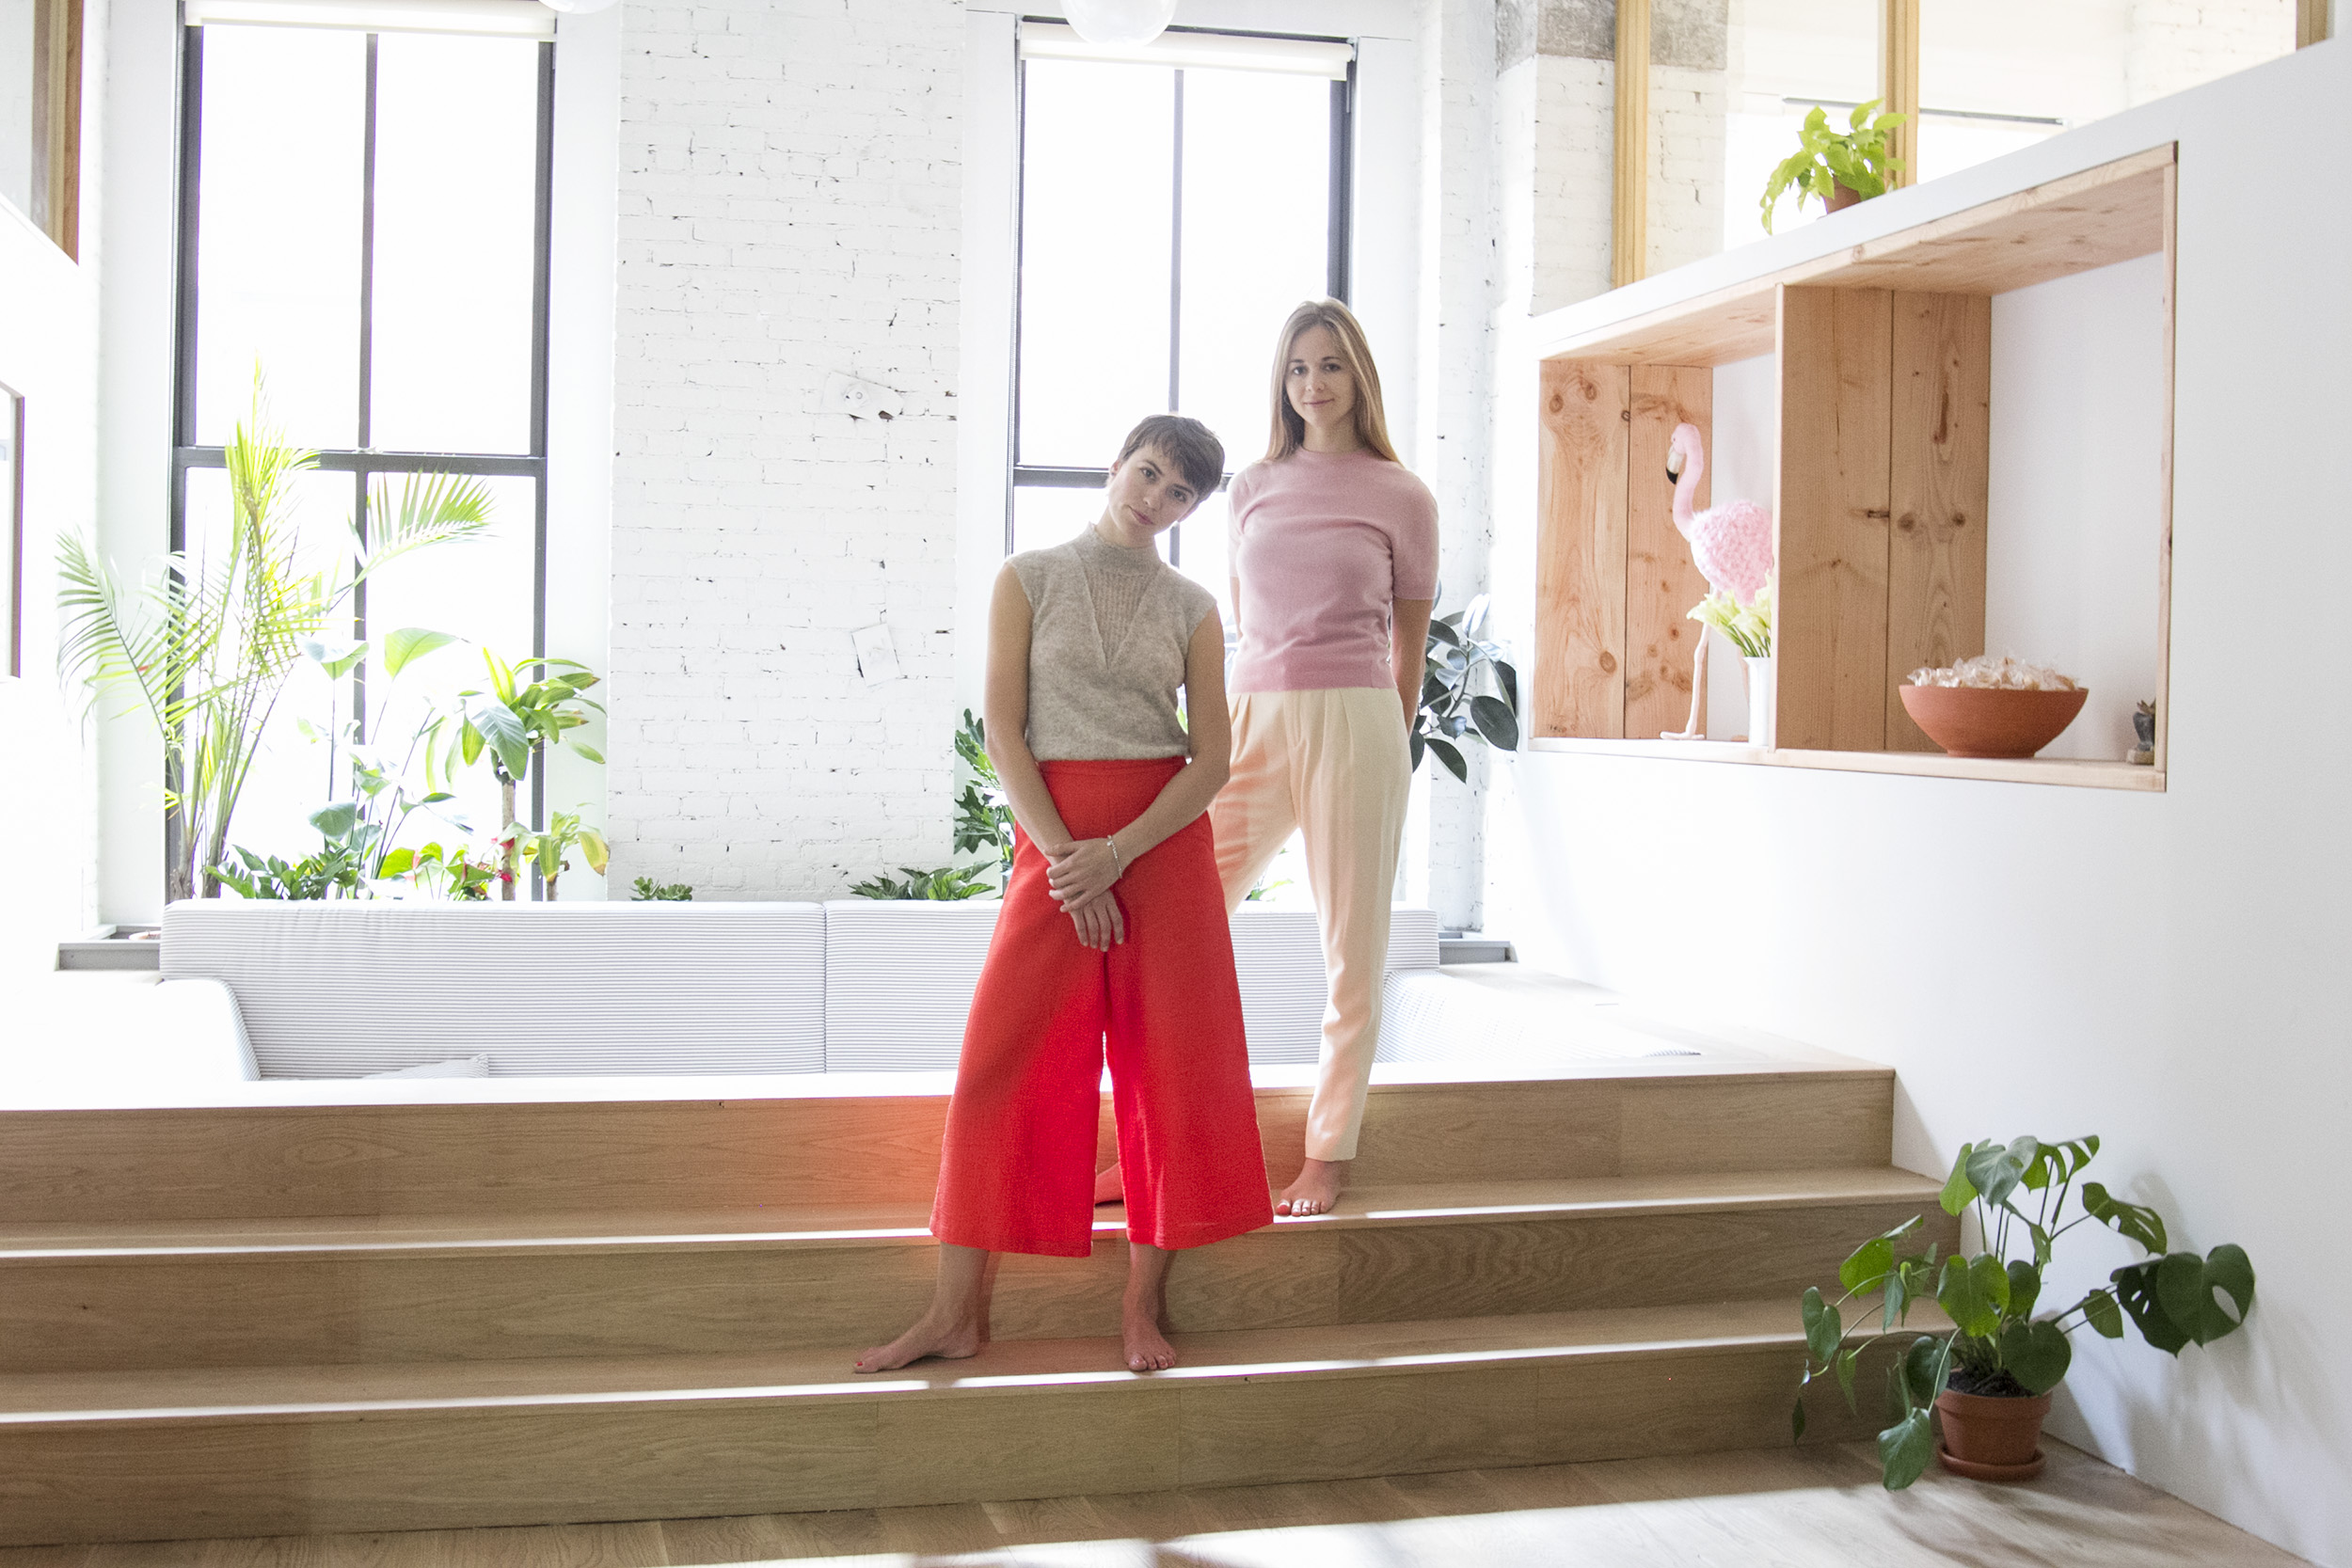 Sky Ting Yoga founders Krissy Jones and Chloe Kernaghan